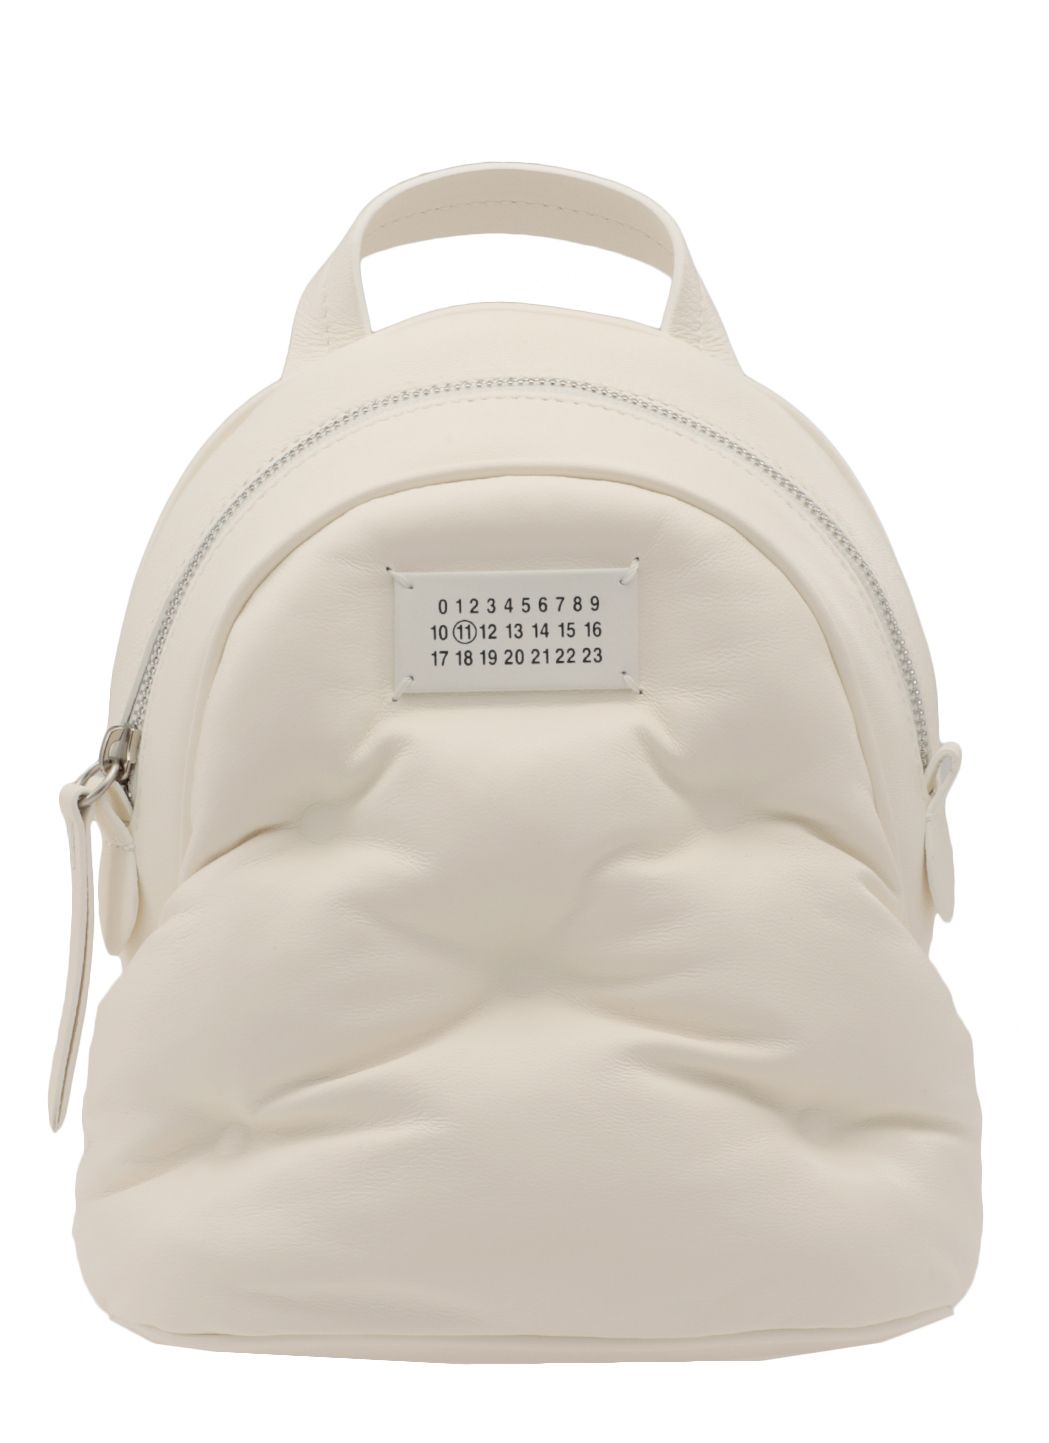 Leather min backpack